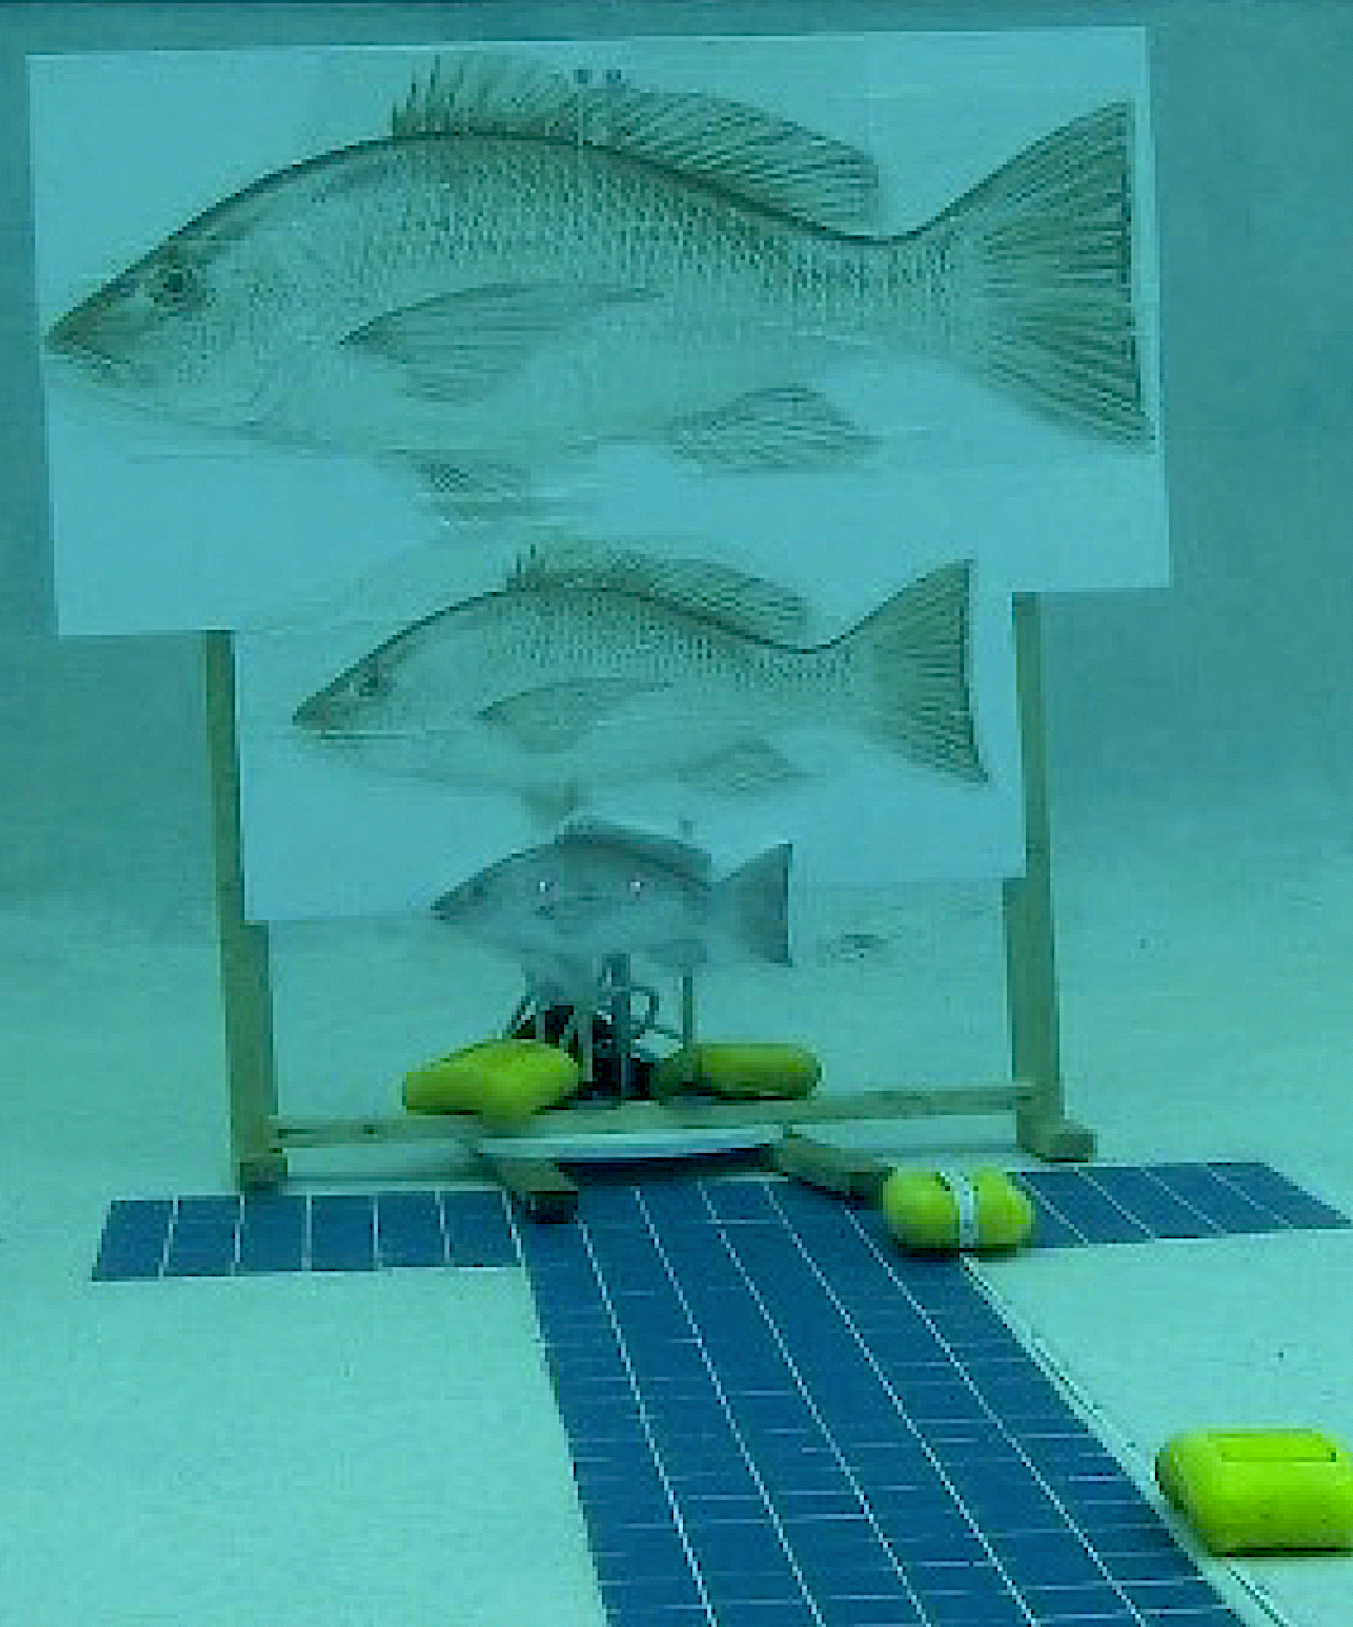 image: Pool testing and calibration involved paper fish models at various angles and distances from each ROV-mounted stereo camera system. Both laser points are visible on the smallest fish model.